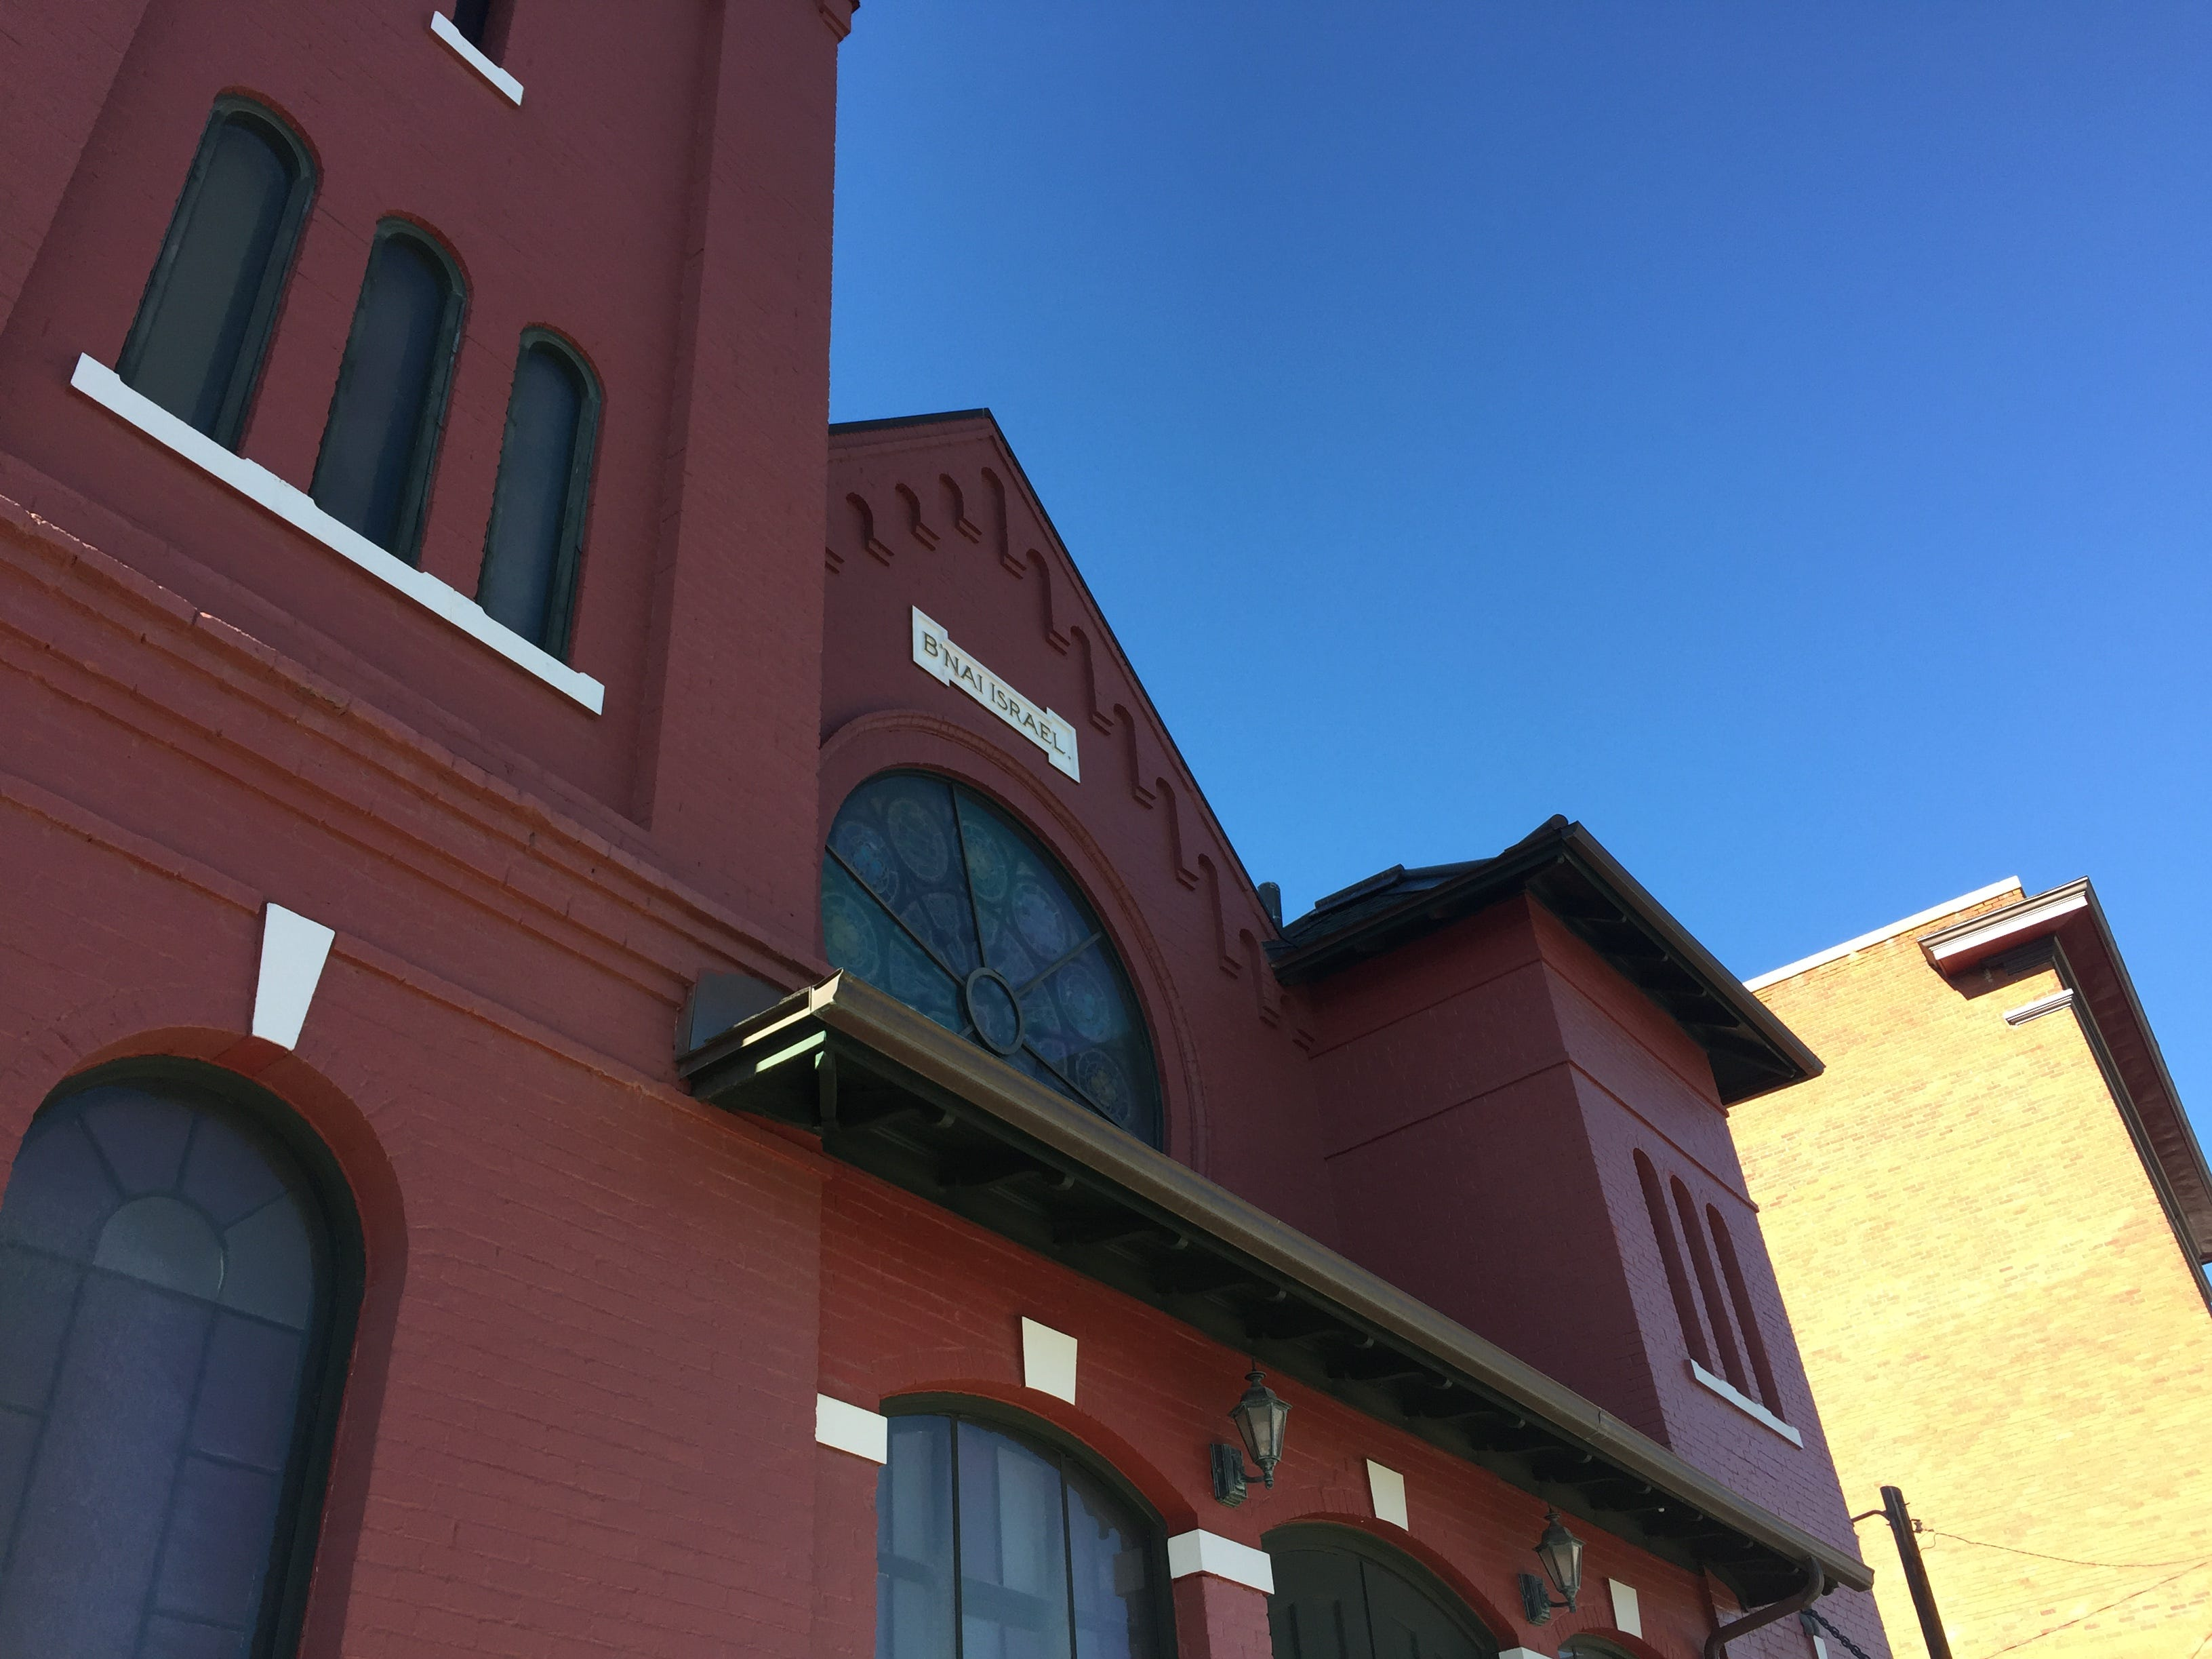 As you walk or drive around Uptown Butte, don't miss Congregation B'Nai Israel, a synagogue.